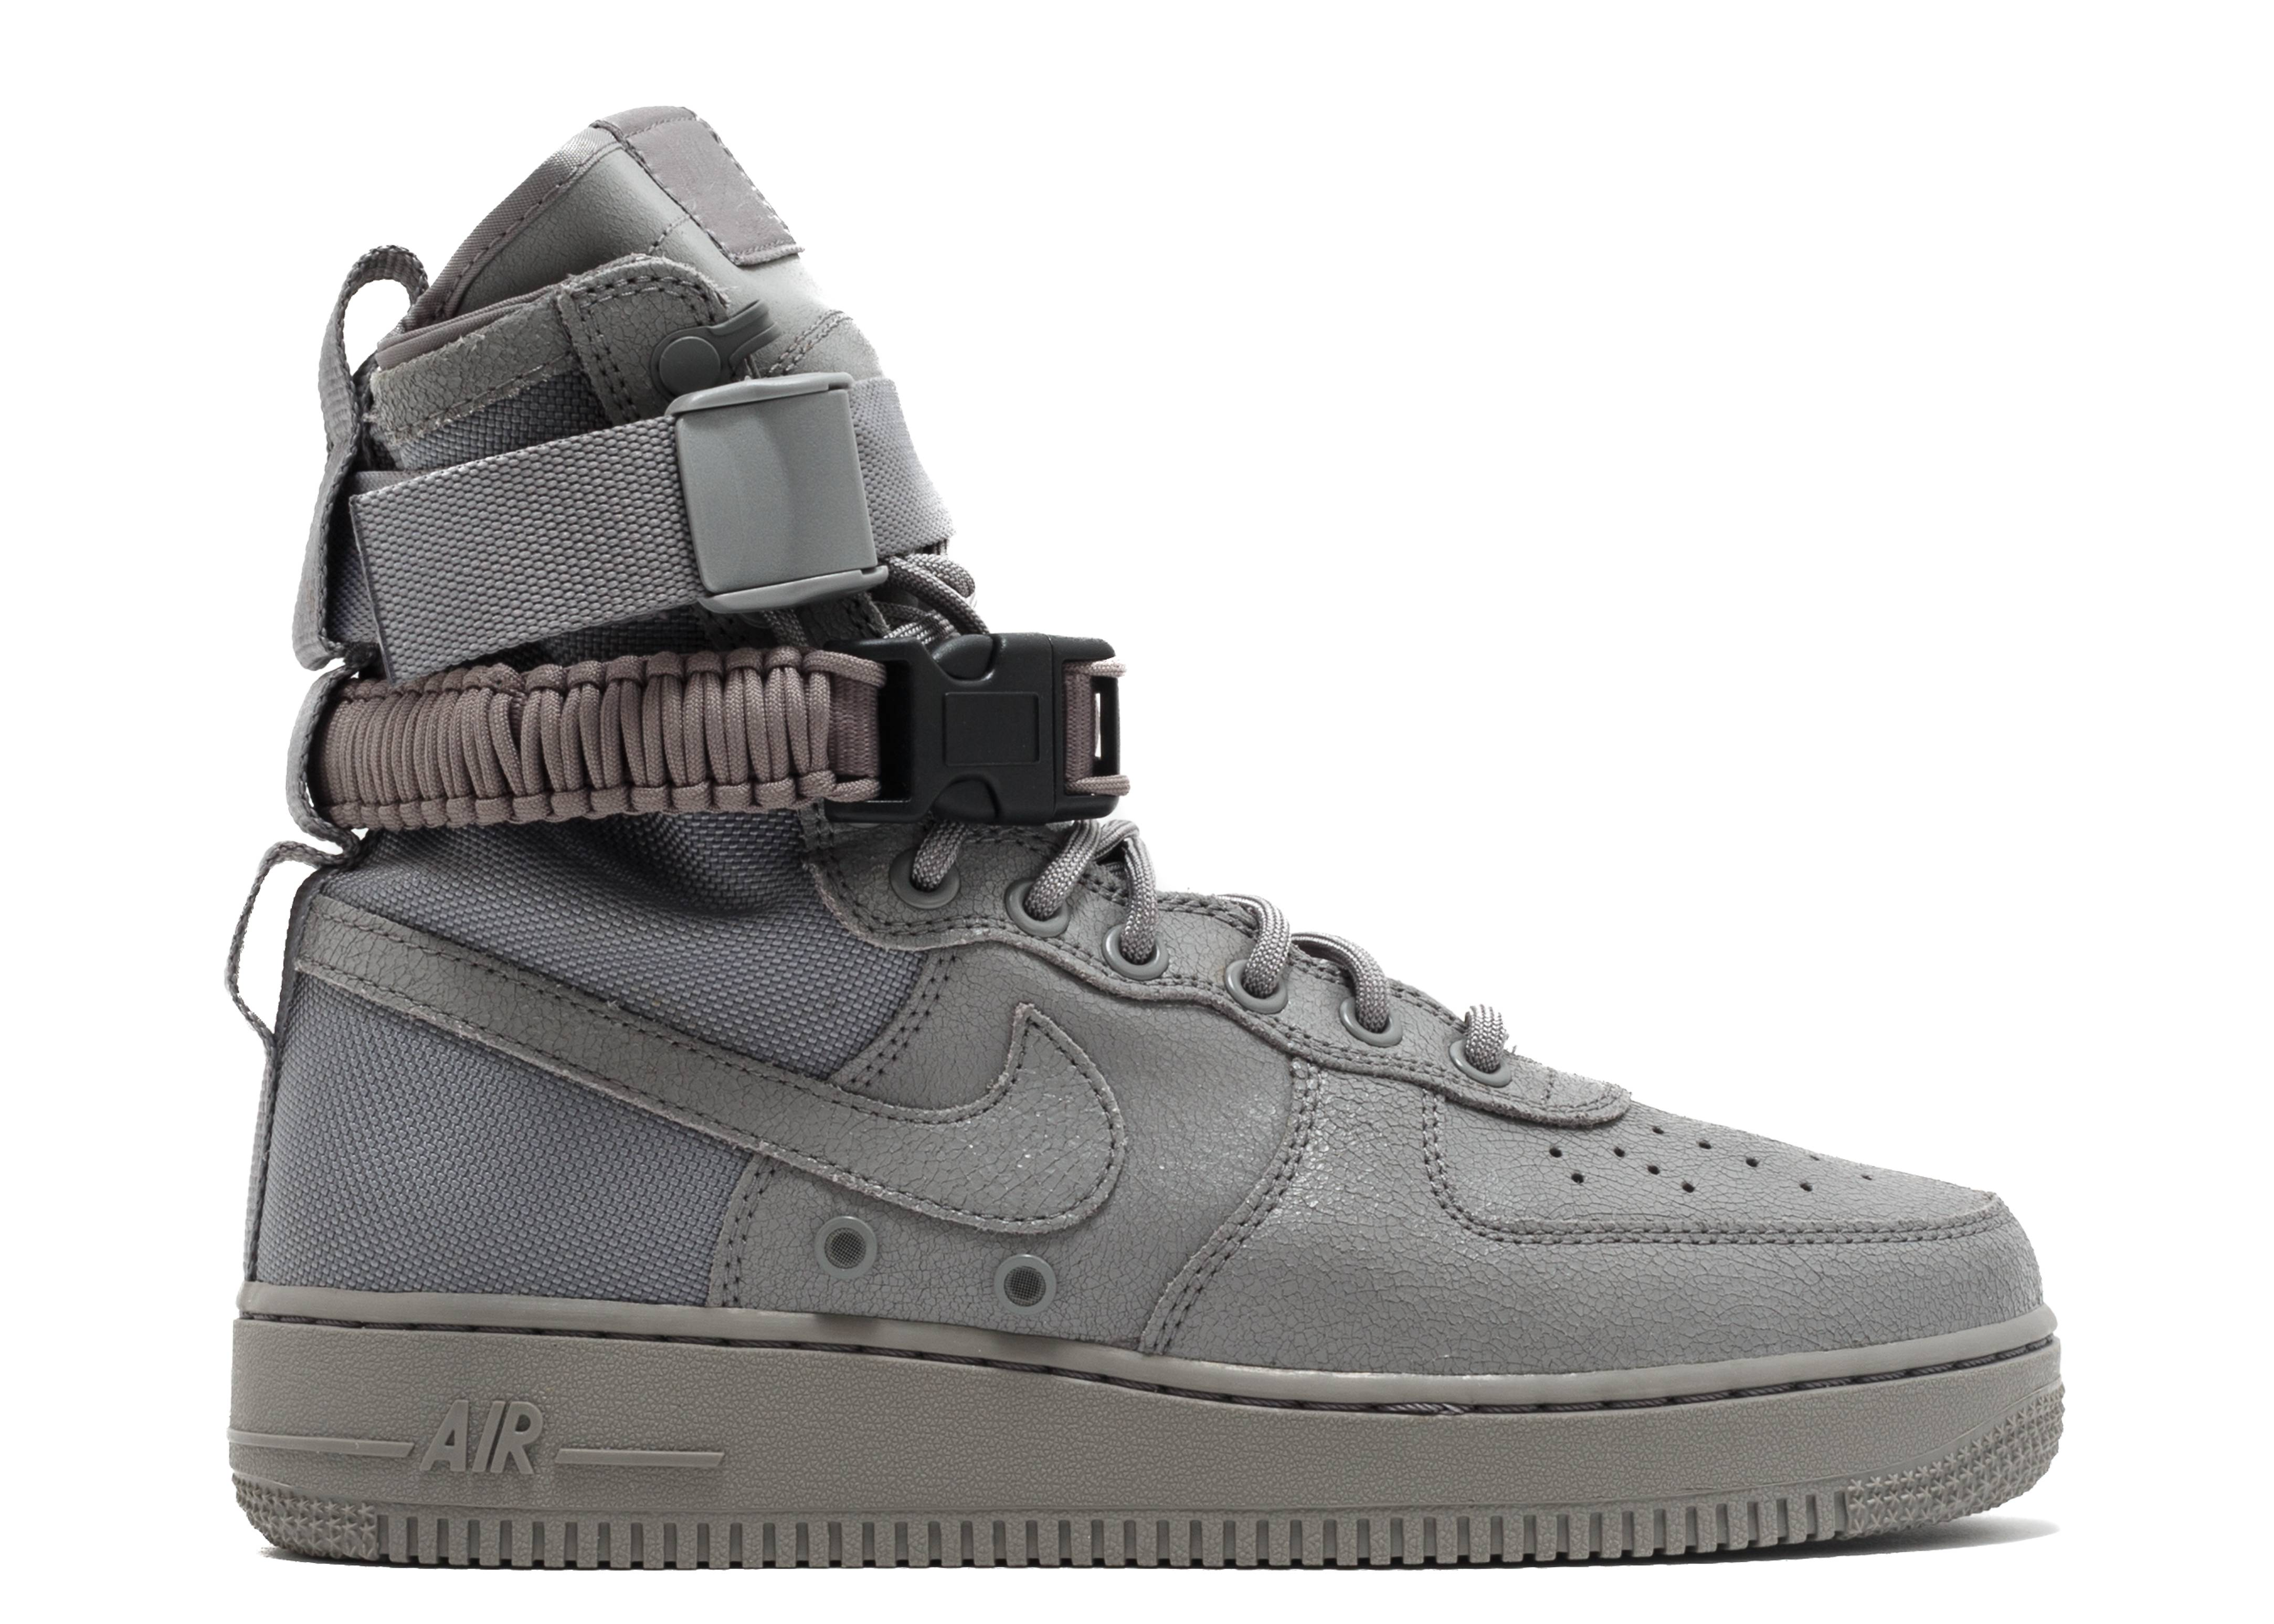 Details about Nike SF AF1 HI Air Force 1 Mid Men's Shoes Trainers Boots UK Size 6 (B GRADE)